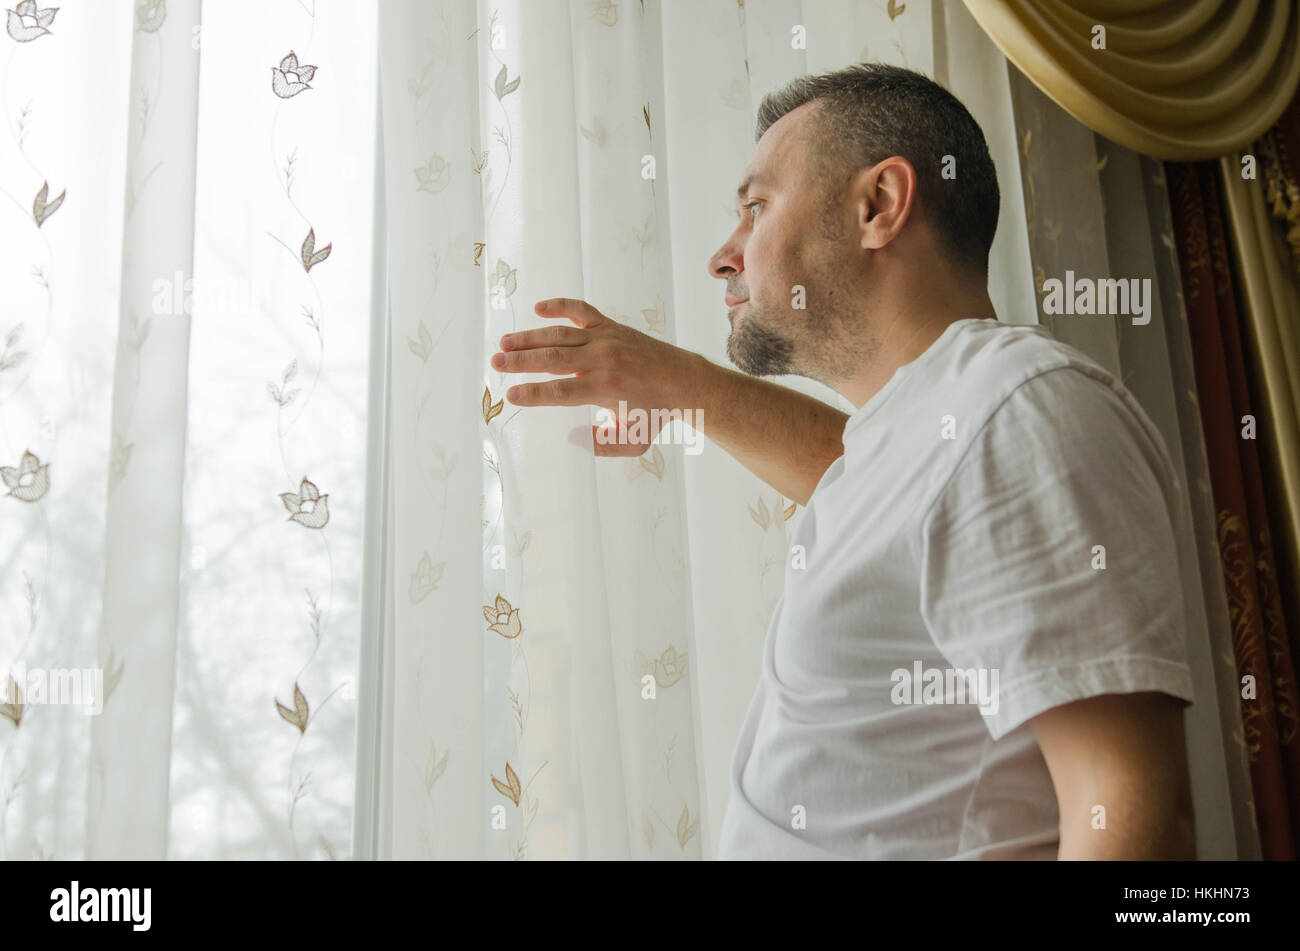 young man looking through a window blind and smiling - Stock Image